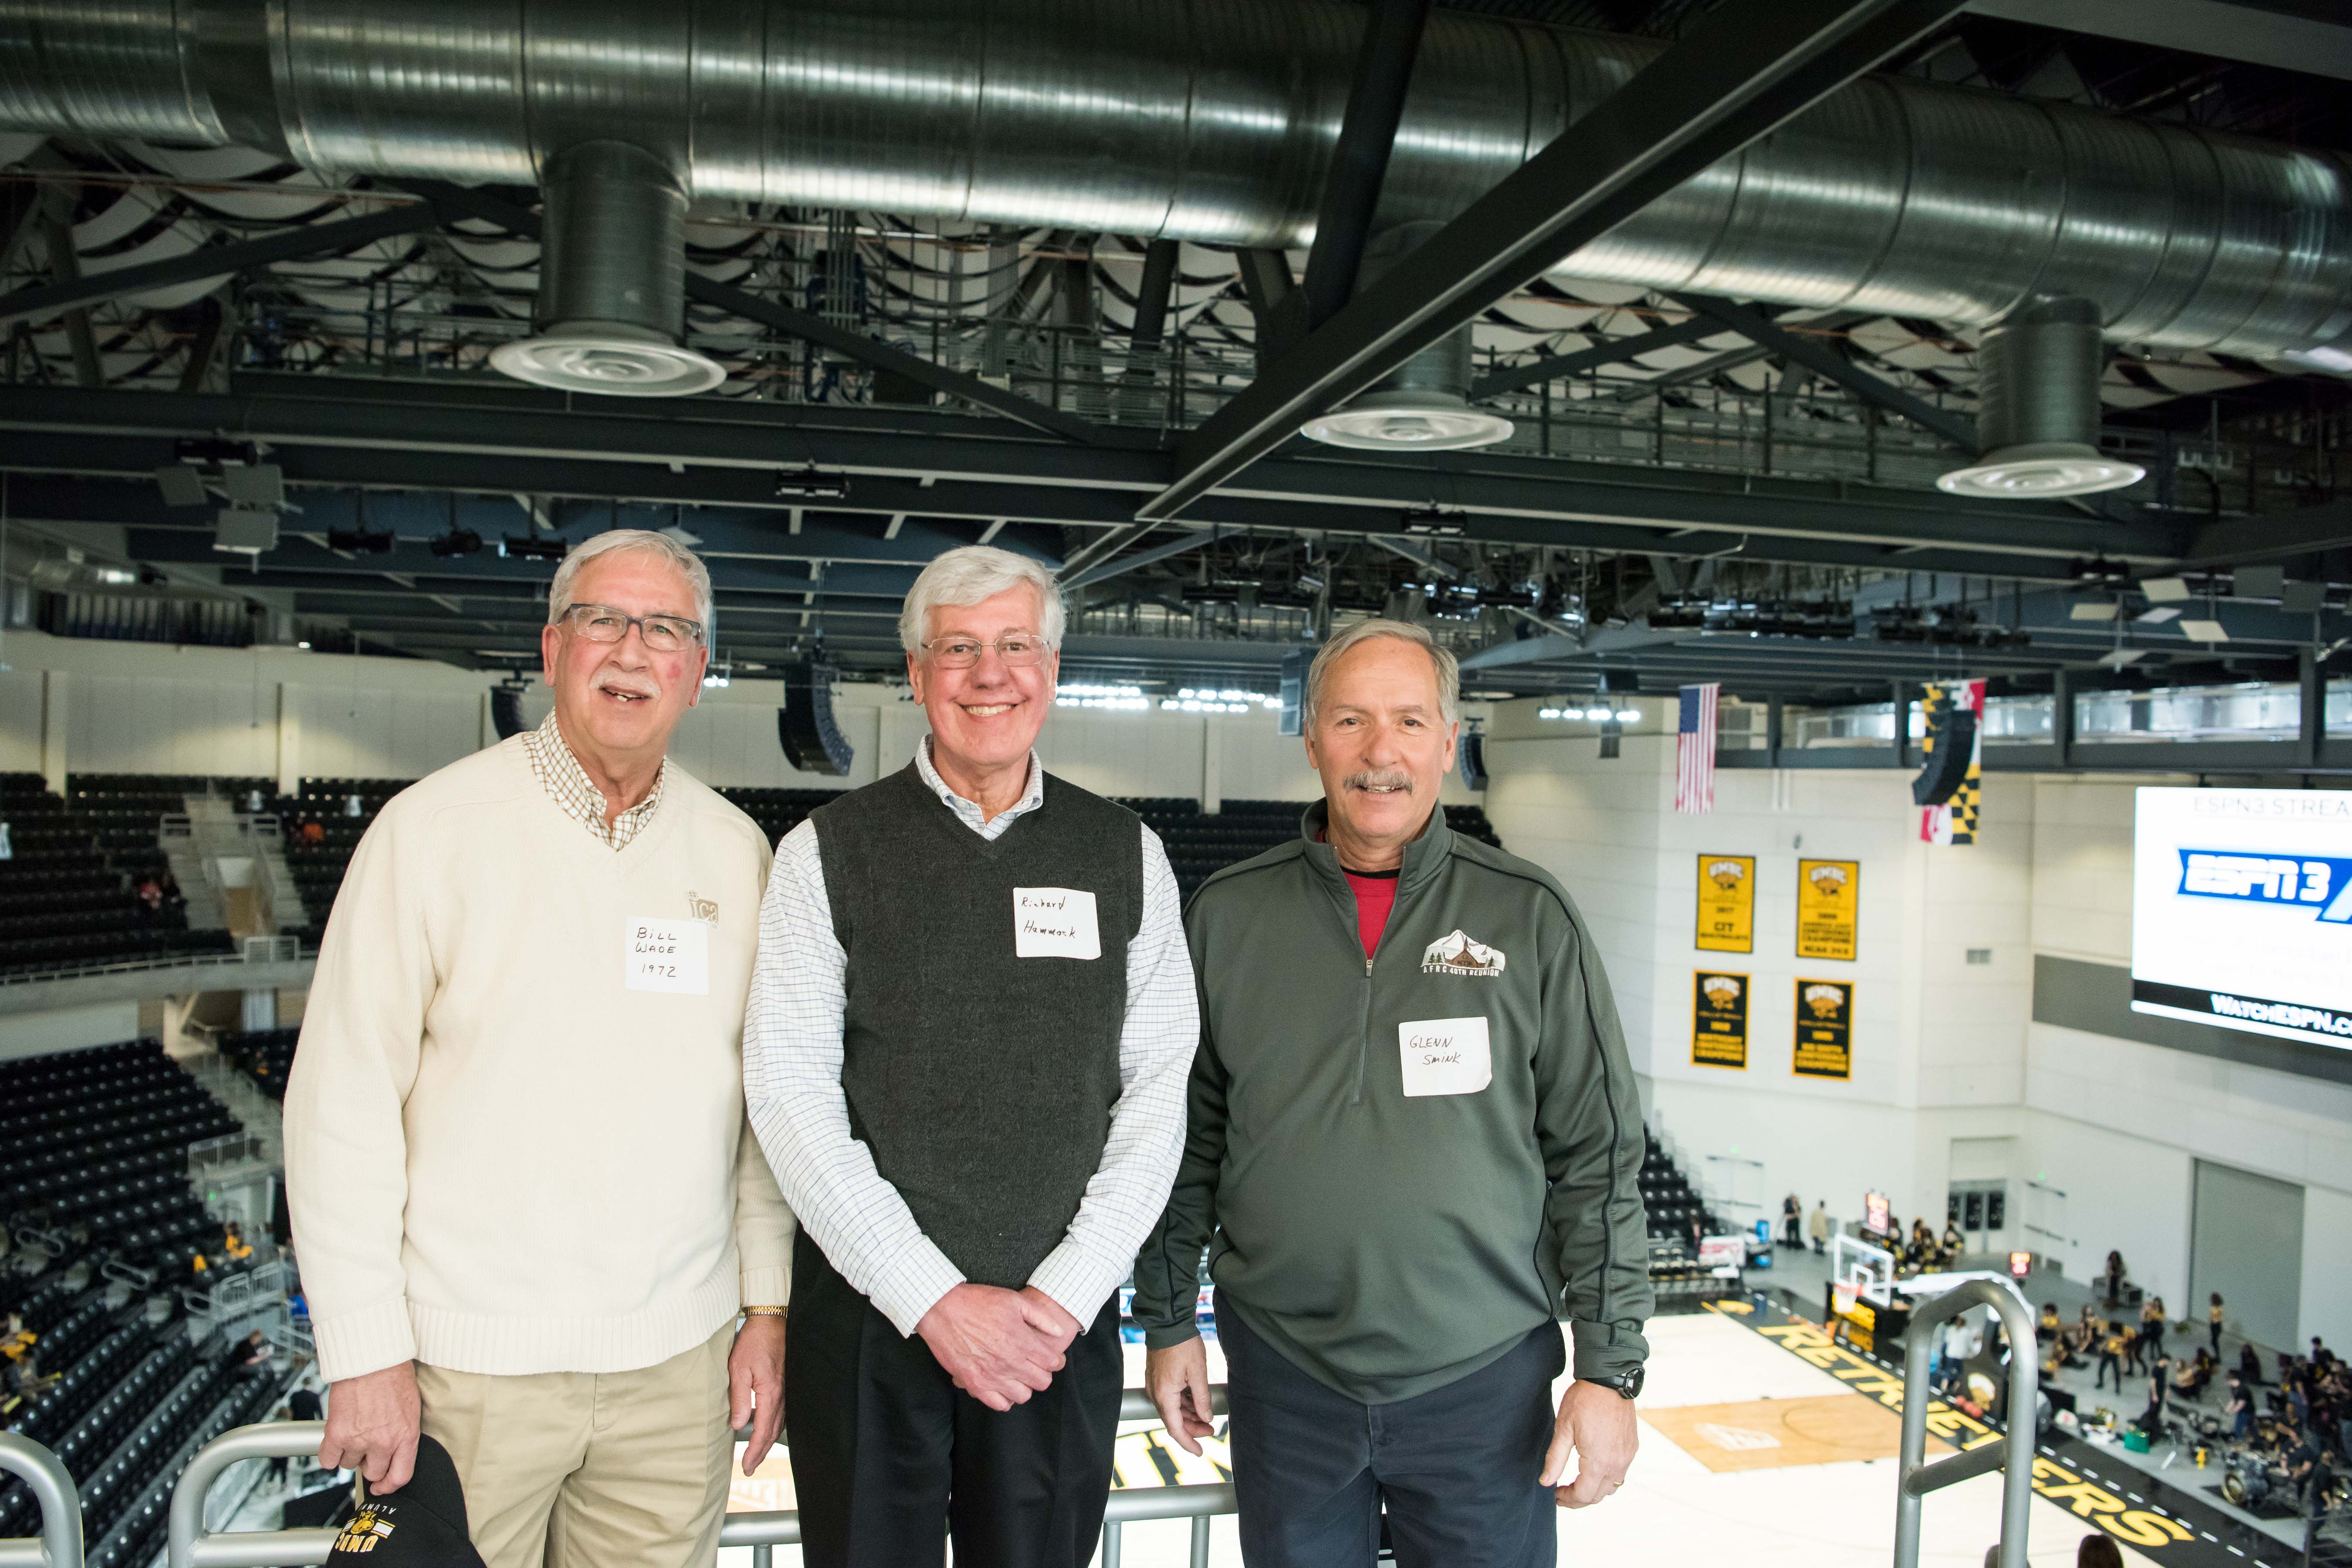 Three men with name tags pose together for event center opening